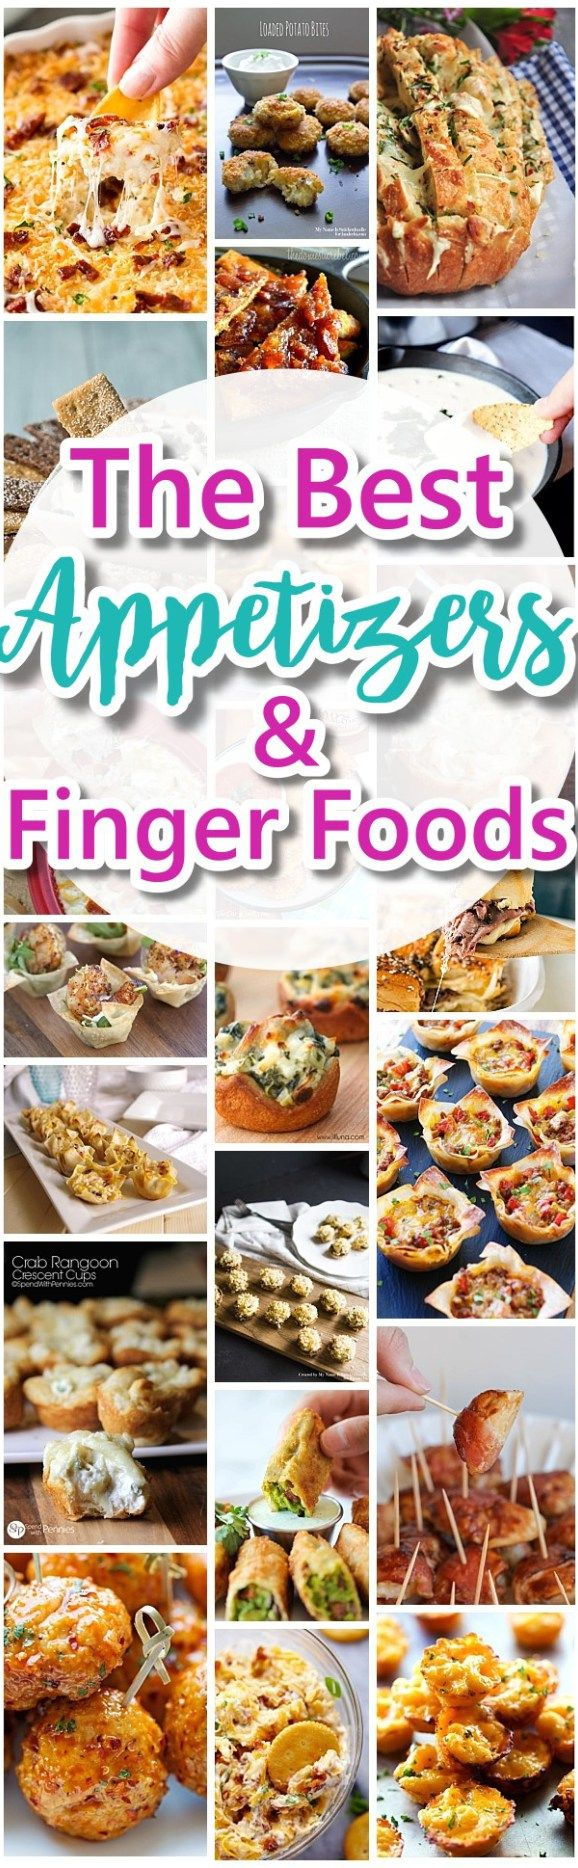 The Best Easy Party Appetizers, Hors D'oeuvres, Delicious Dips and Finger Foods Recipes - Quick family friendly snacks for Holi